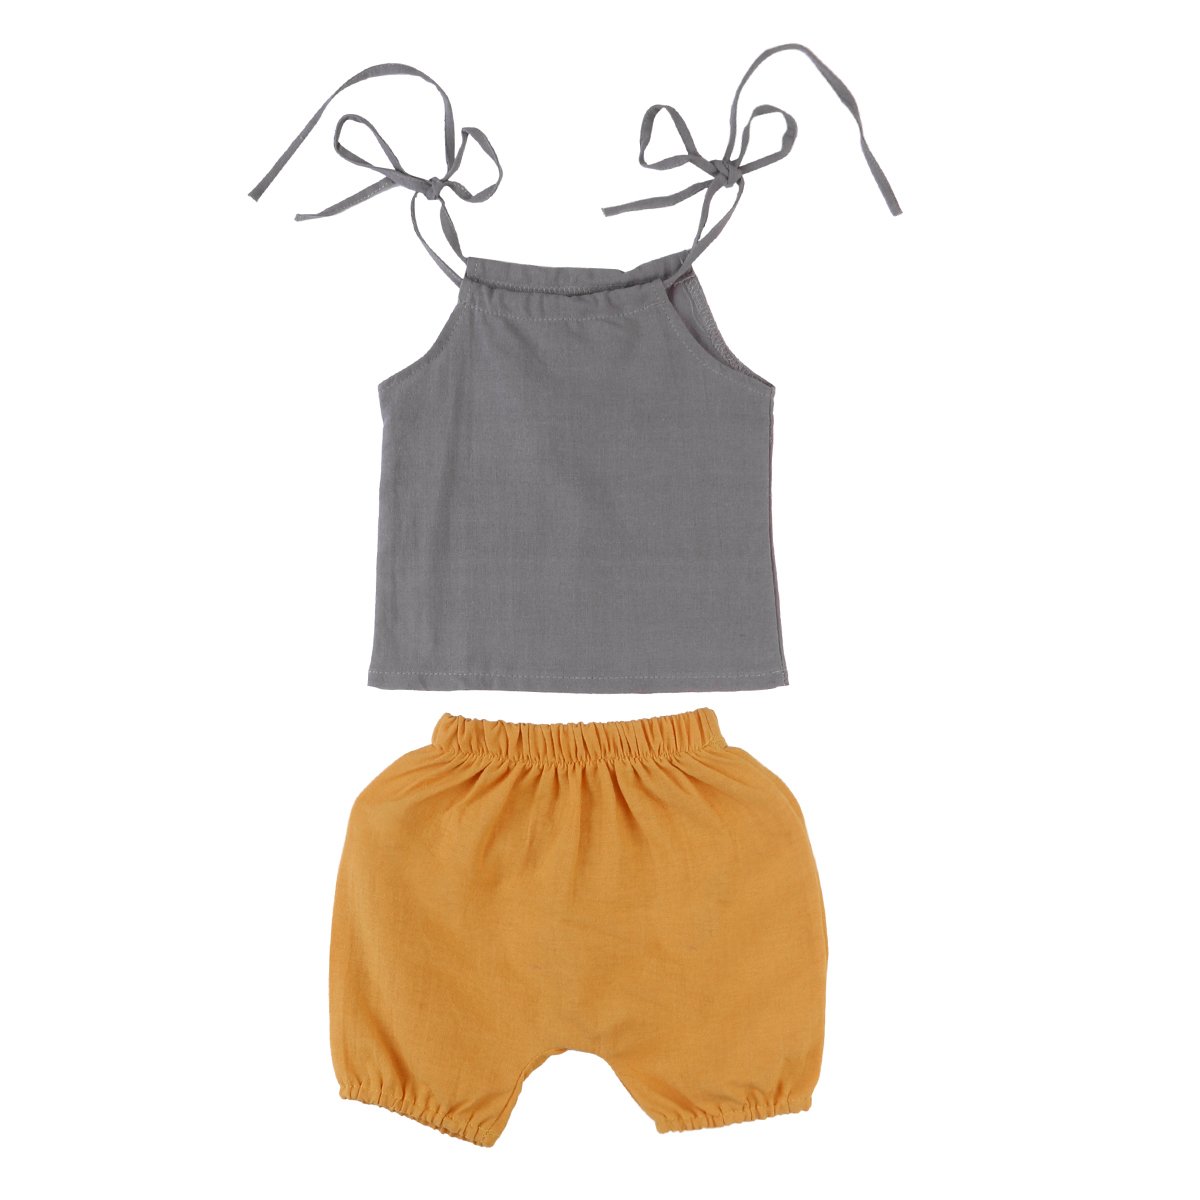 2pcs Toddler Newborn Baby Boy Girl Clothes Sets Vest T-shirt Tops+Pants Kids Baby Casual Summer Outfits Set Clothes